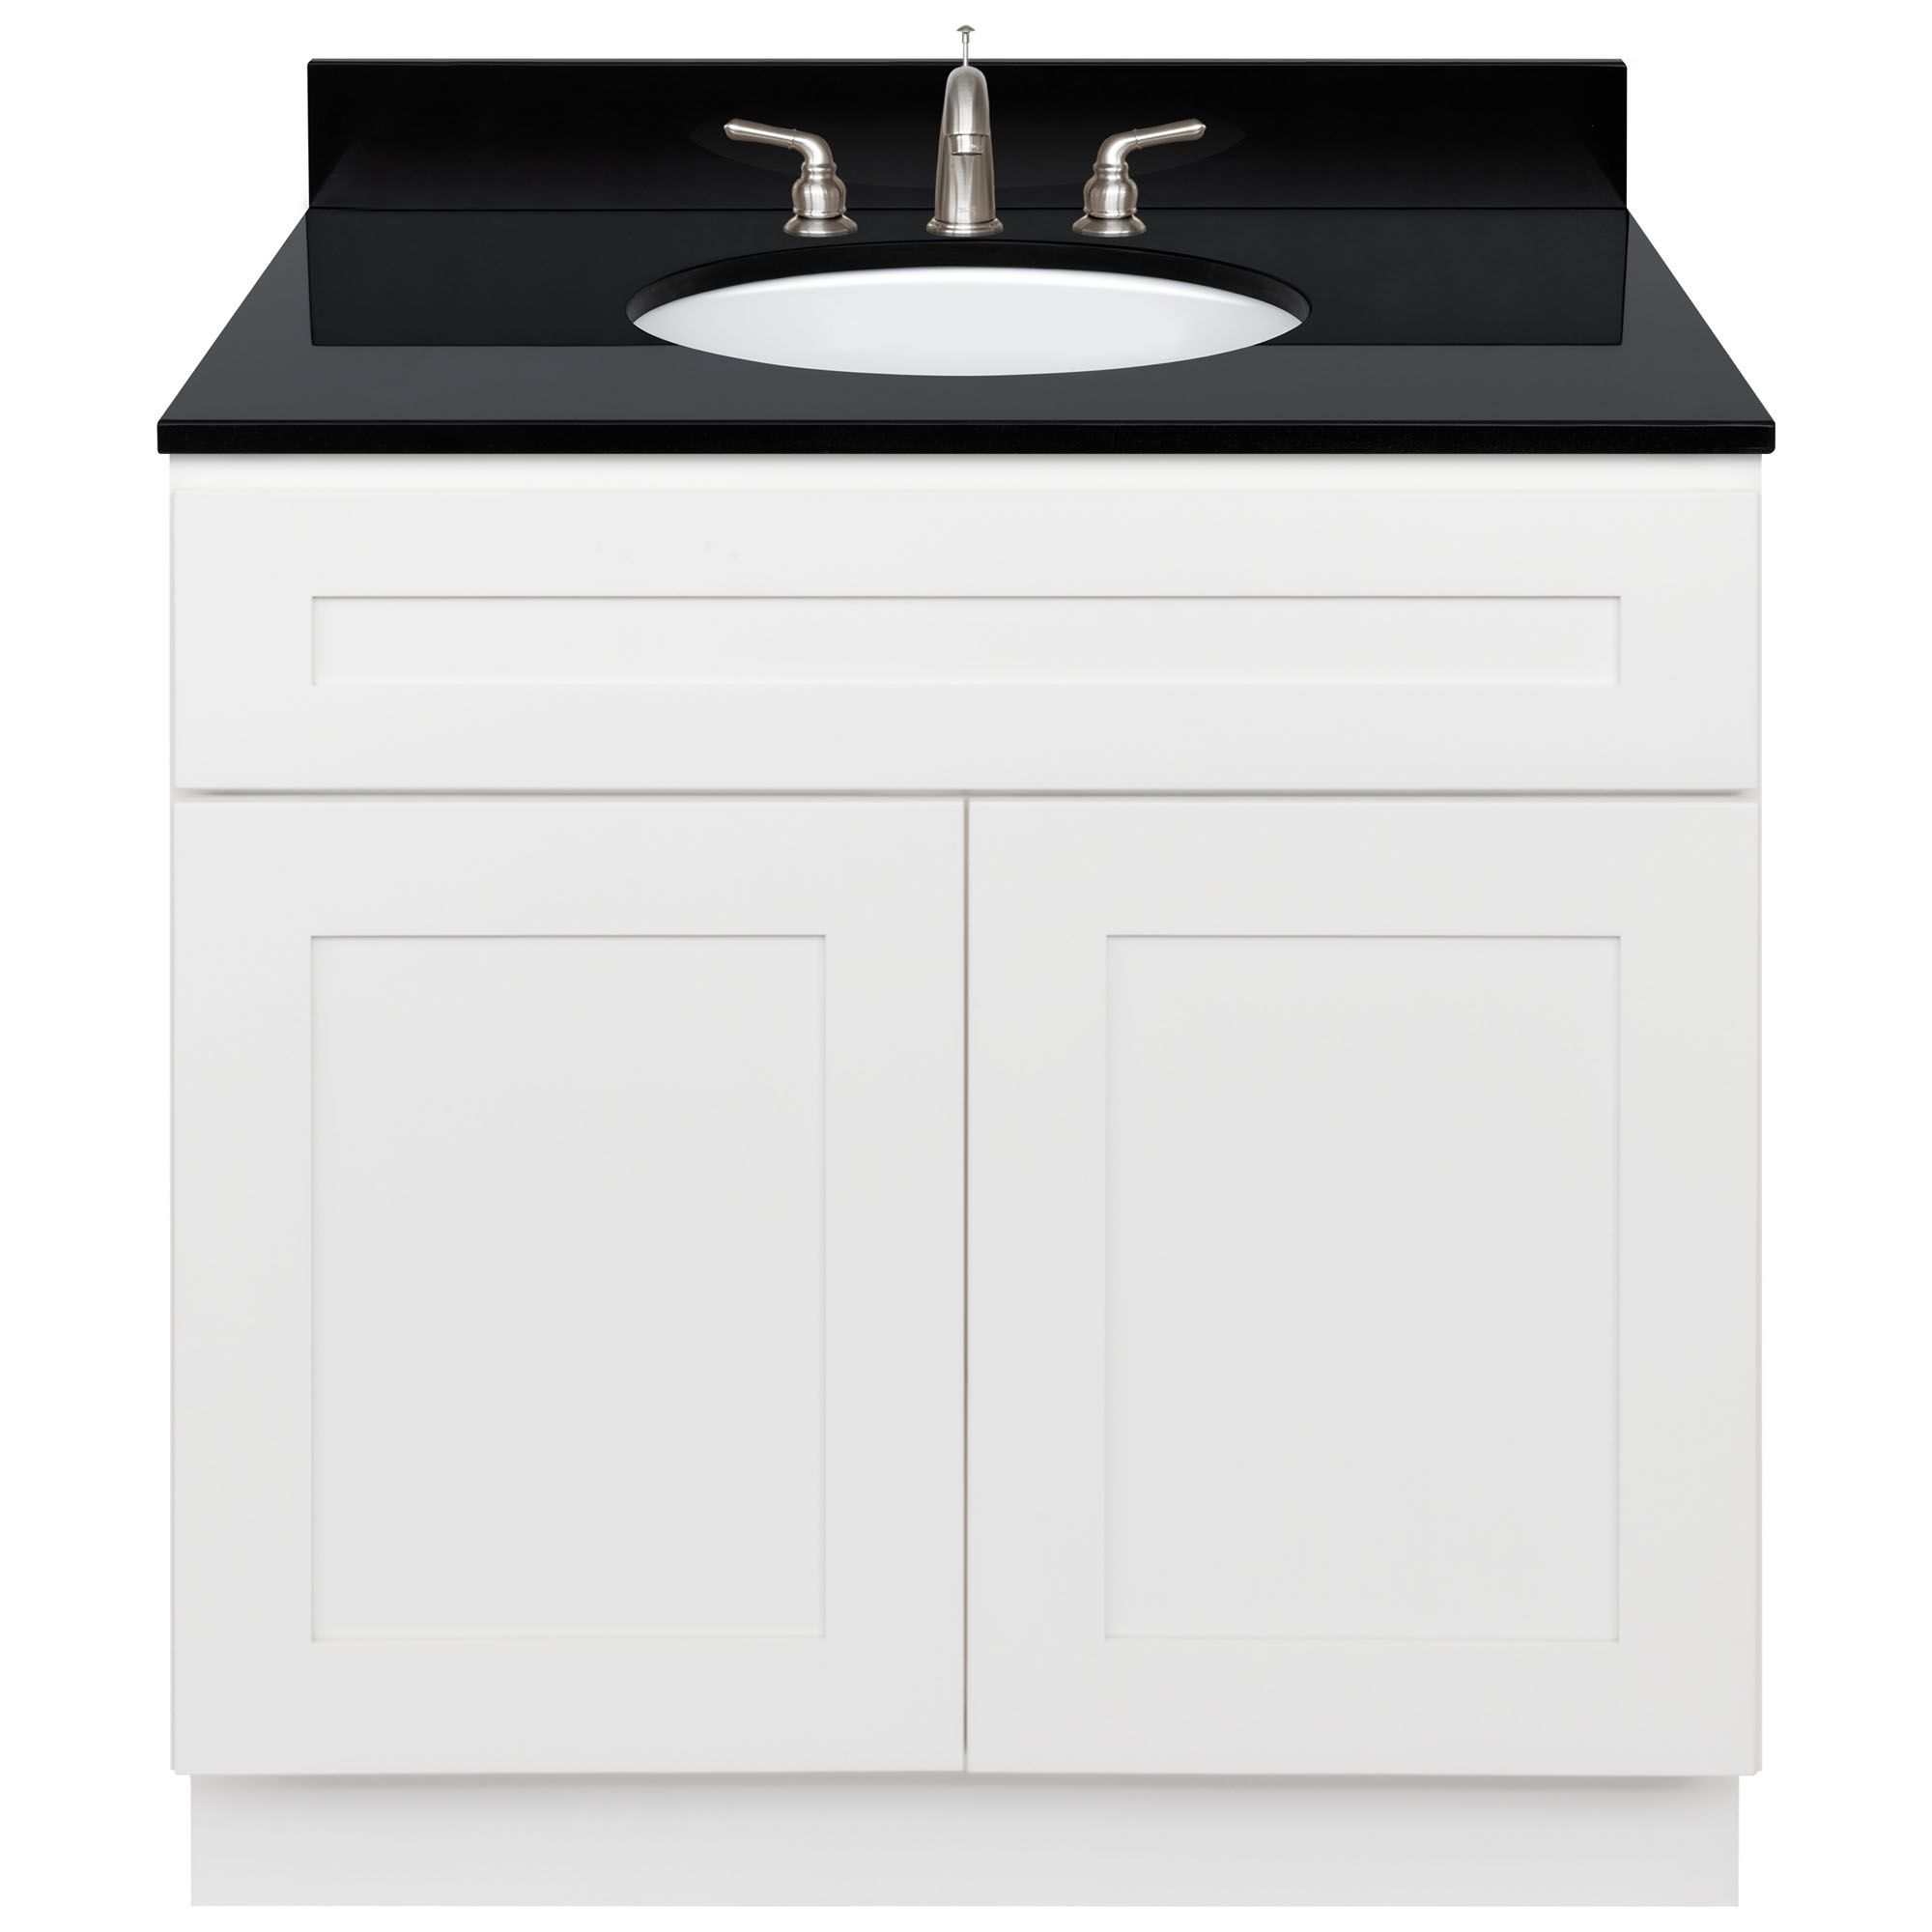 Lesscare Alpina White 37w Vanity And Absolute Black Granite Top With 8 In Spread And Faucet